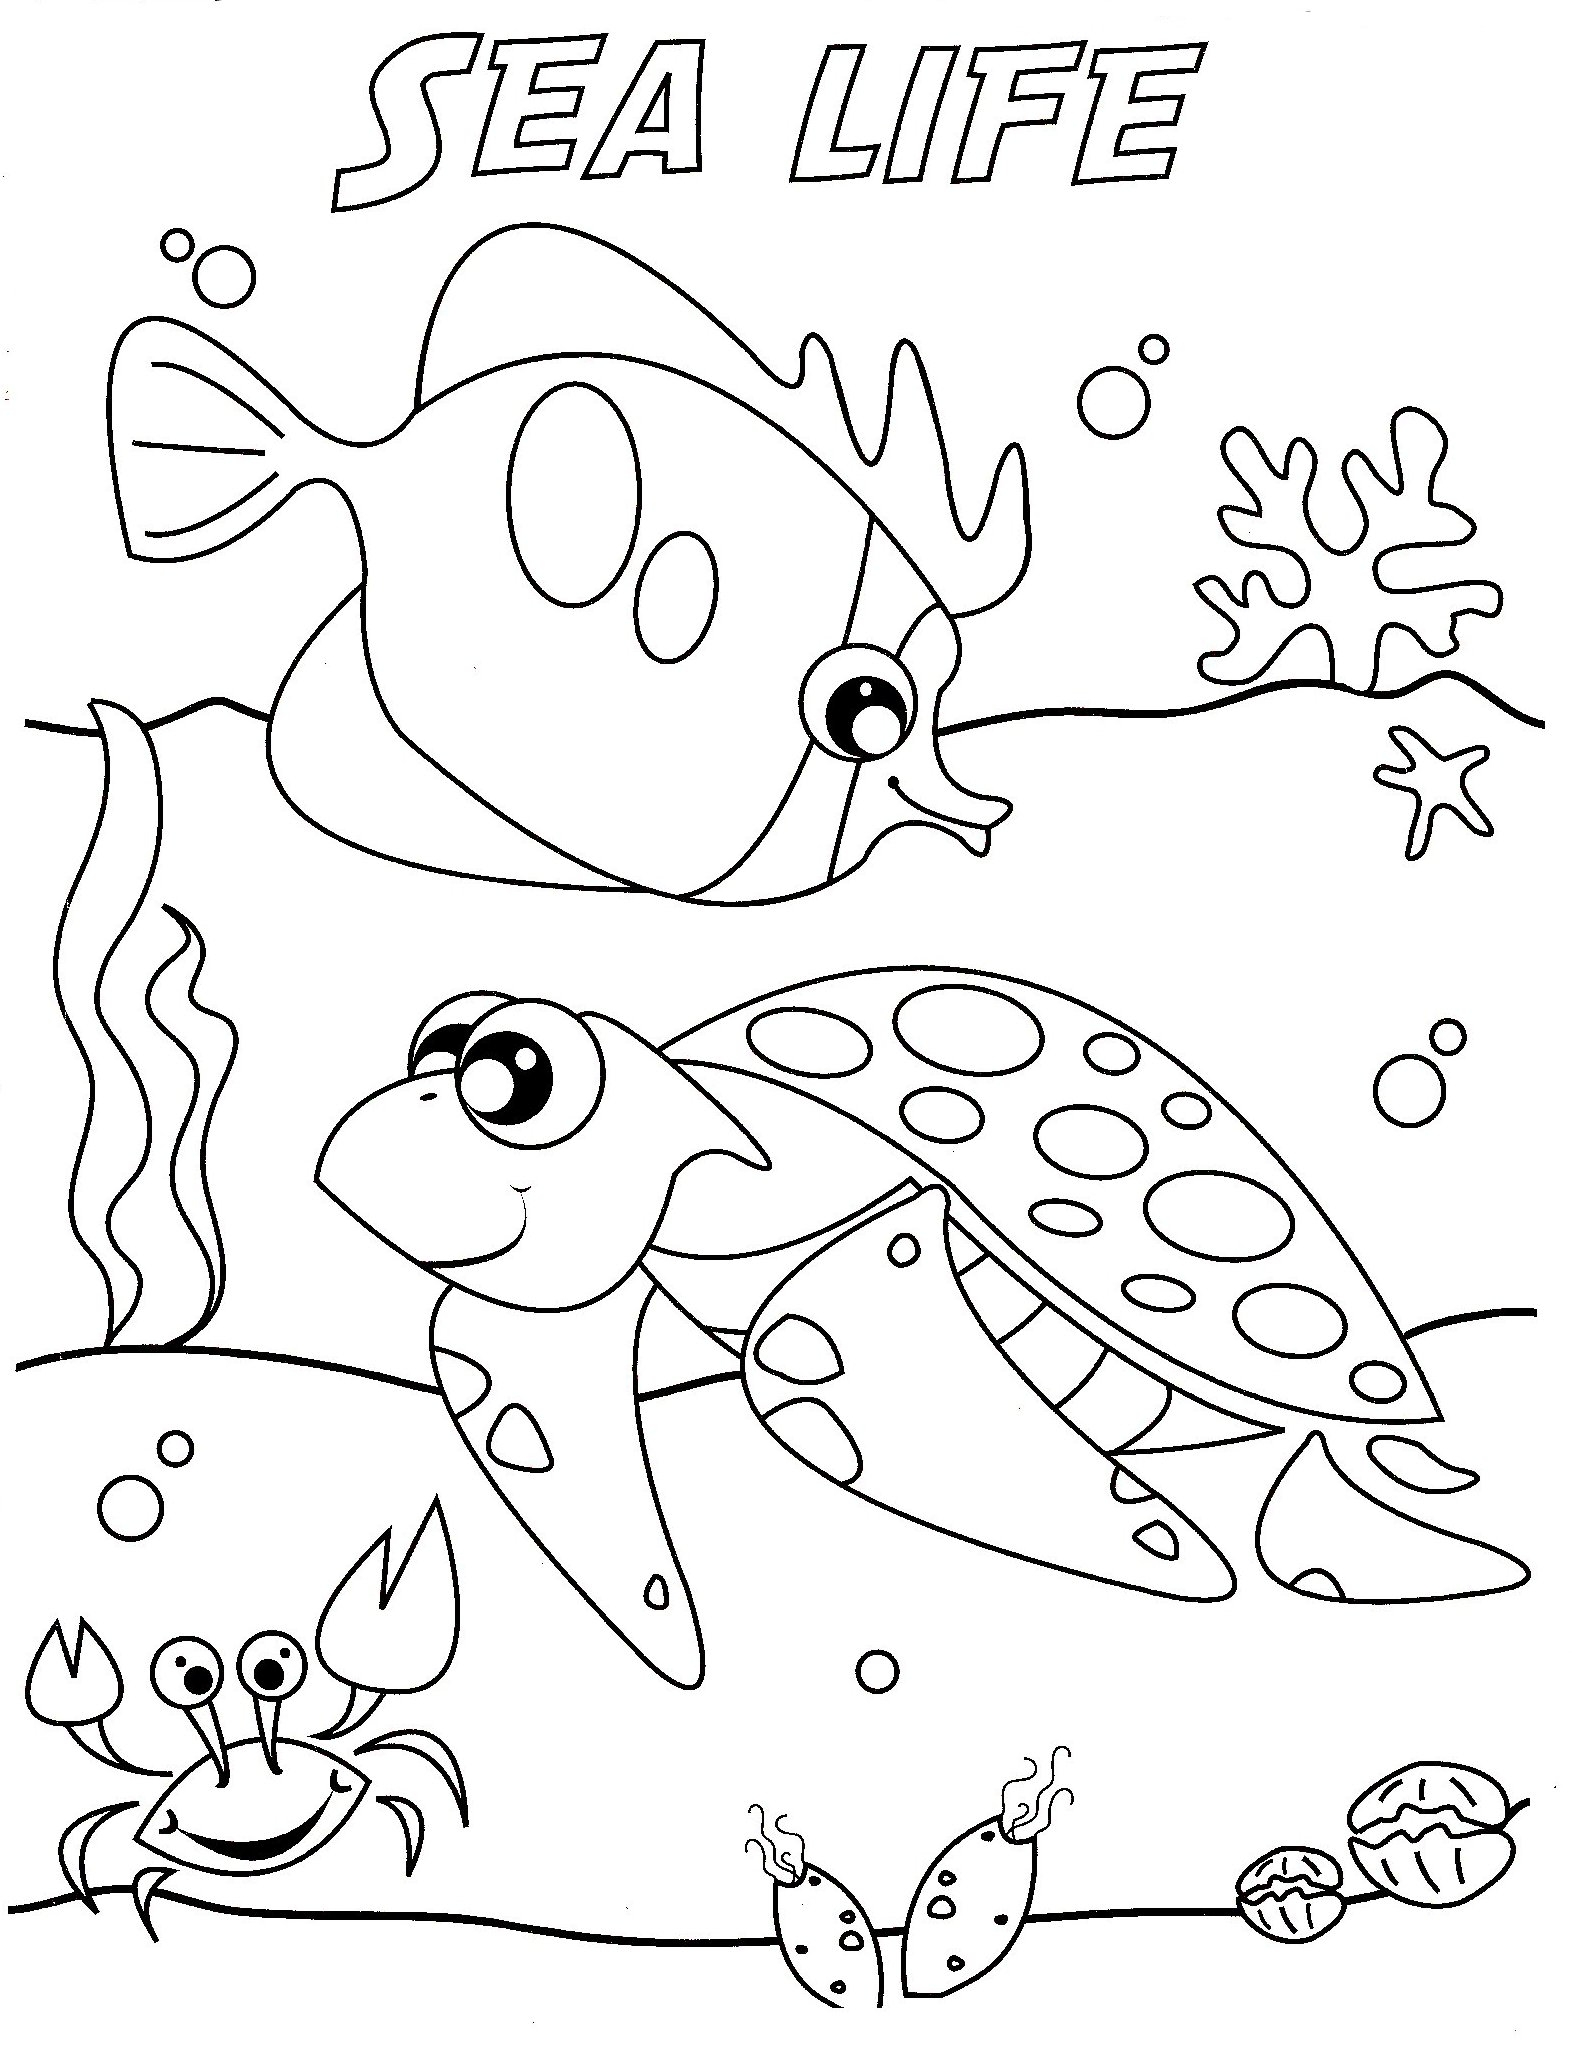 Sea Animals Coloring Pages - Sea Life